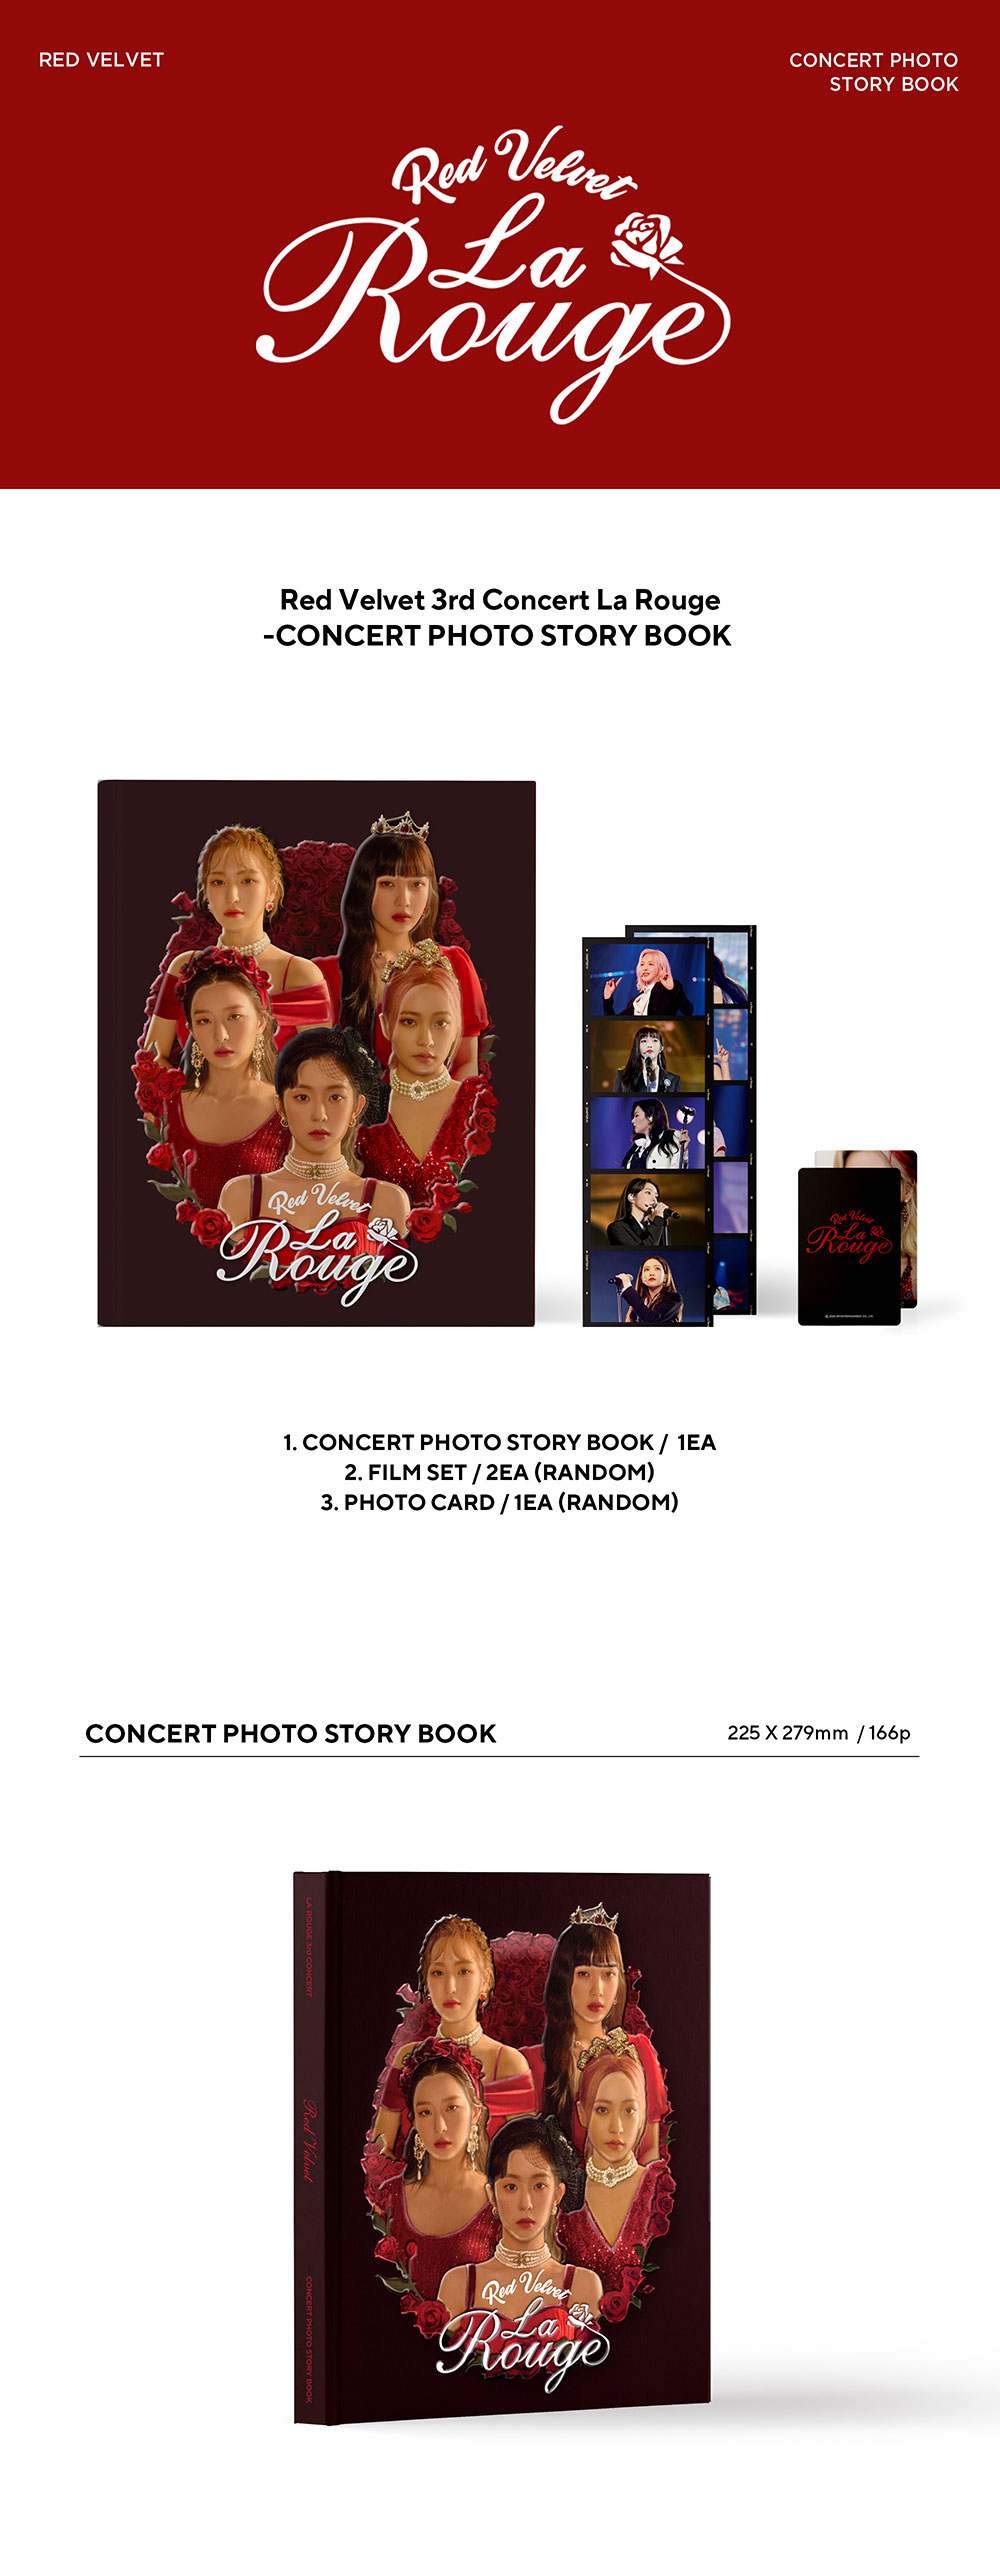 red velvet 3rd concert photo story book